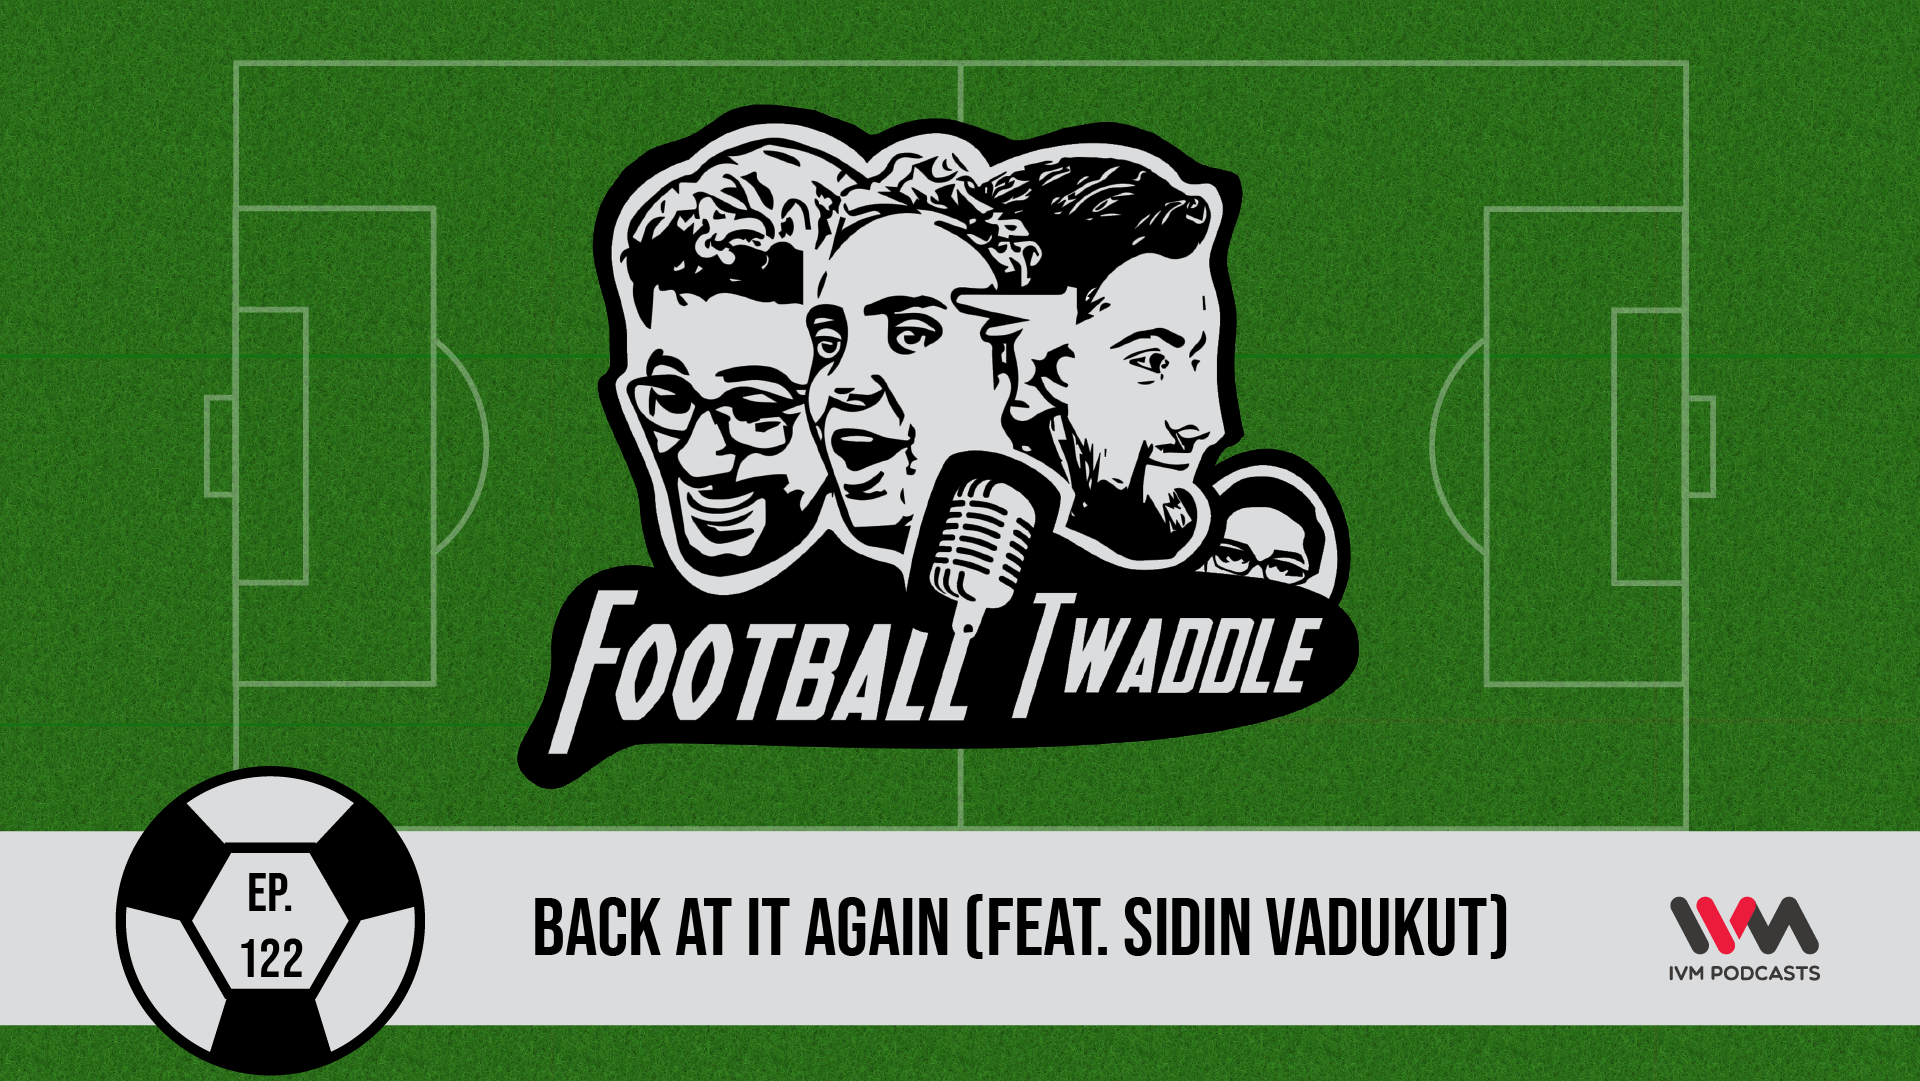 FootballTwaddleEpisode122.png